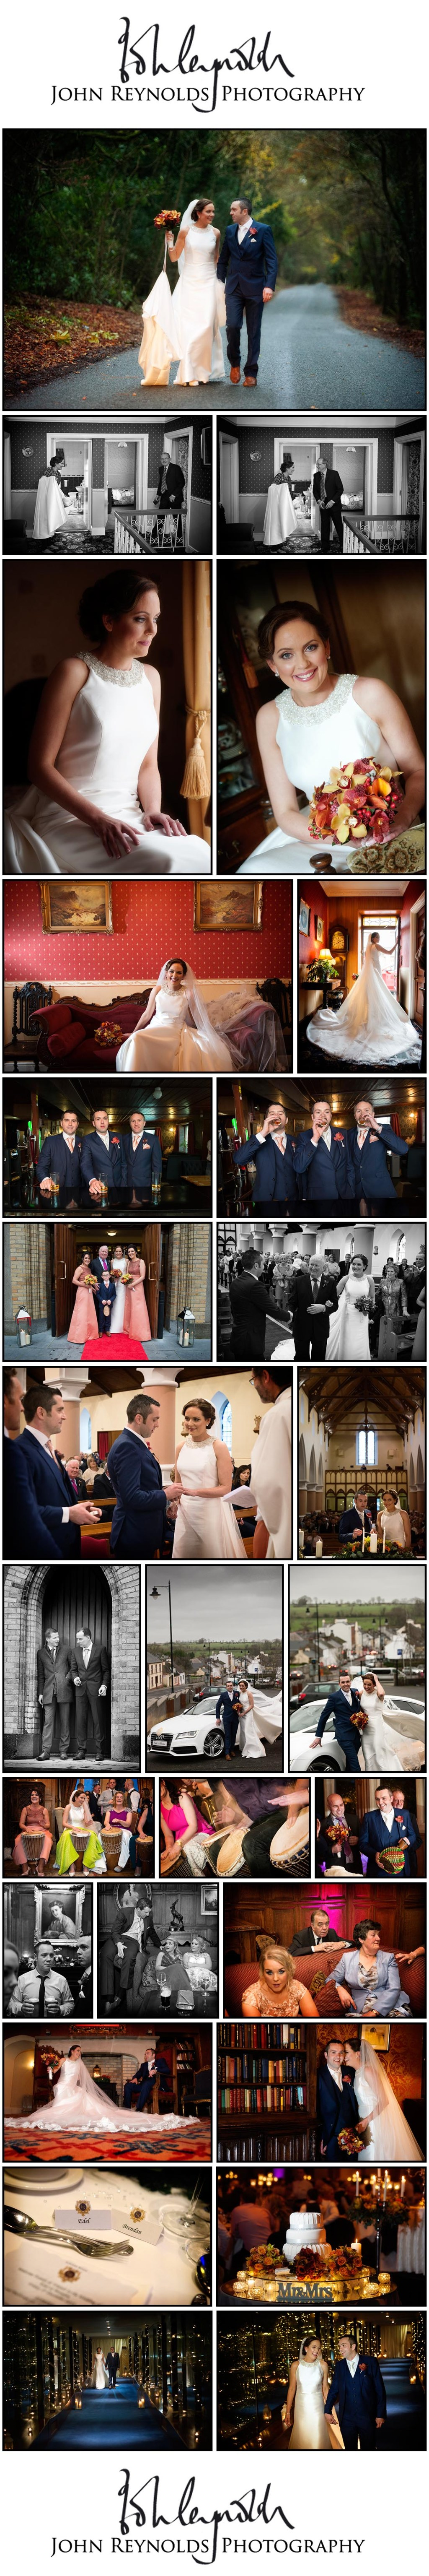 Blog Collage-Edel & Brendan